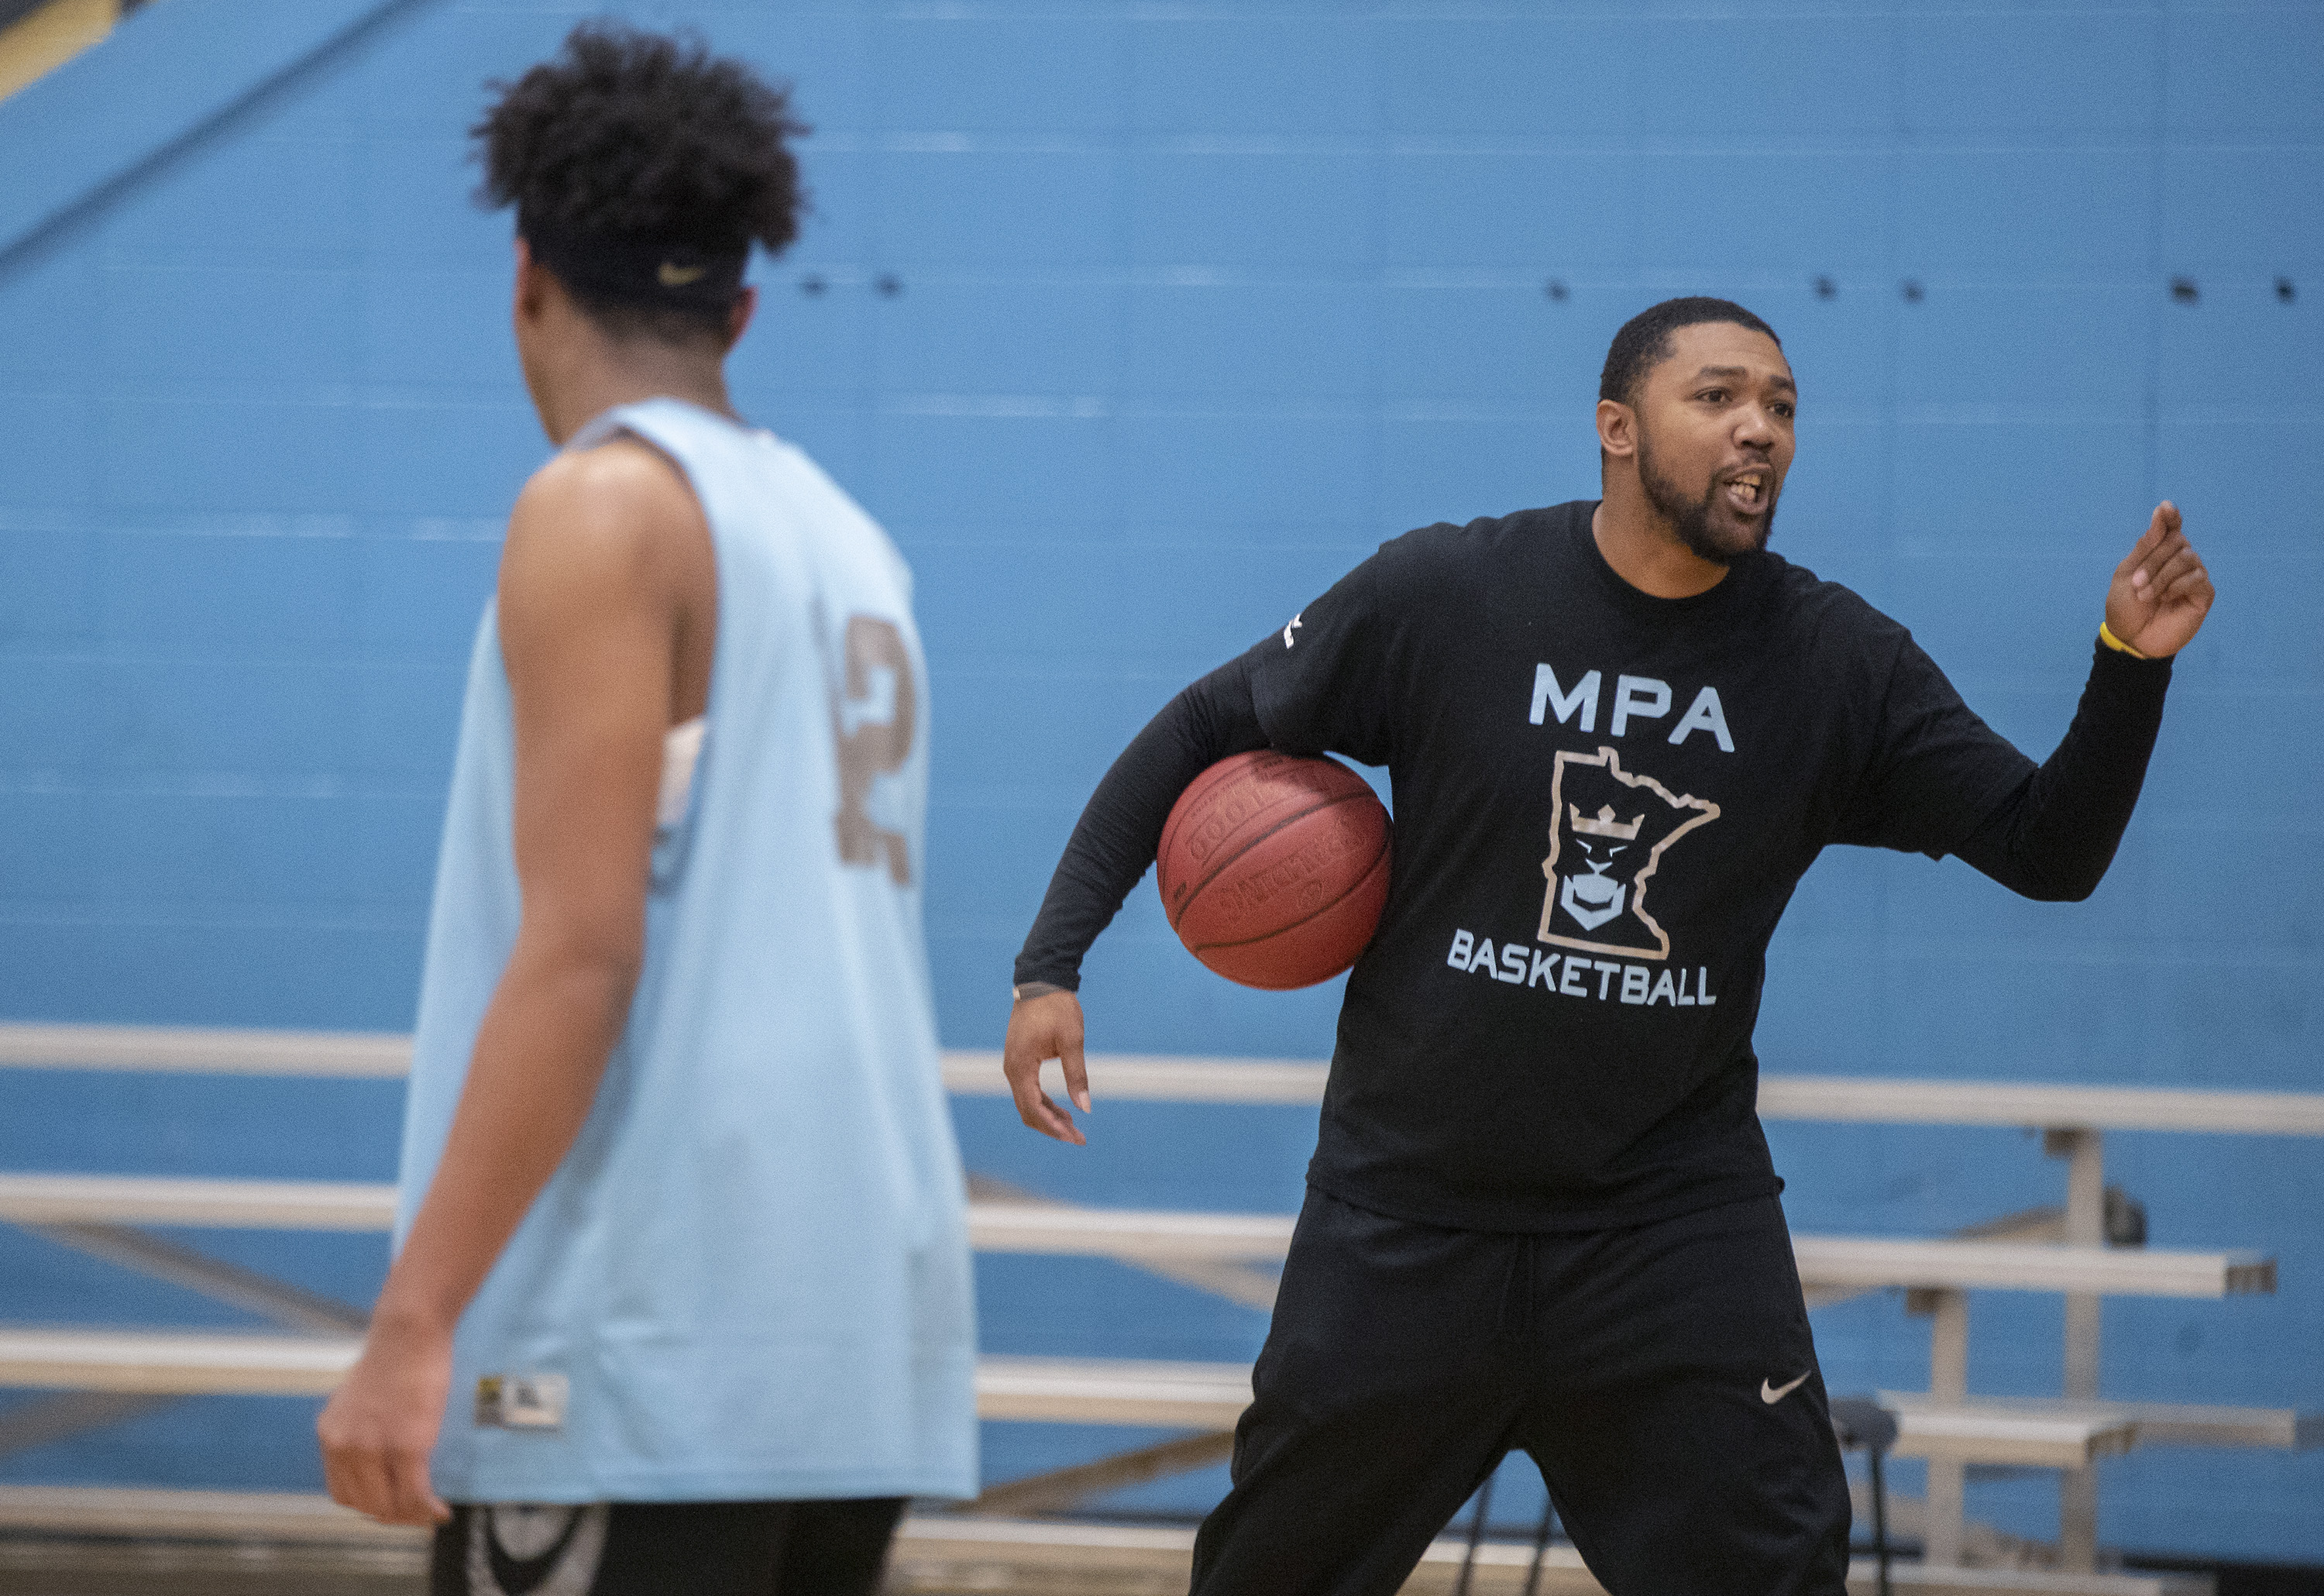 January 9, 2019 - Minneapolis, MN, U.S. - Minnesota Preparatory Academy Head Coach for post-graduates Nick Broch led students in practice, Wednesday, January 9, 2019 in Minneapolis, MN.  The school is a newly-formed basketball-based prep school housed at Jerry Gambles Boys and Girls' Club in north Minneapolis. It was conceived to capitalize on a growing national trend of athletic-based prep schools that cater to the needs of kids who hope to have a basketball future past high school. The school was established using many of the players that led Brooklyn Center to the state Class 2A semifinals a year ago.    ]  ELIZABETH FLORES • liz.flores@startribune.com (Credit Image: © Elizabeth Flores/Minneapolis Star Tribune via ZUMA Wire)